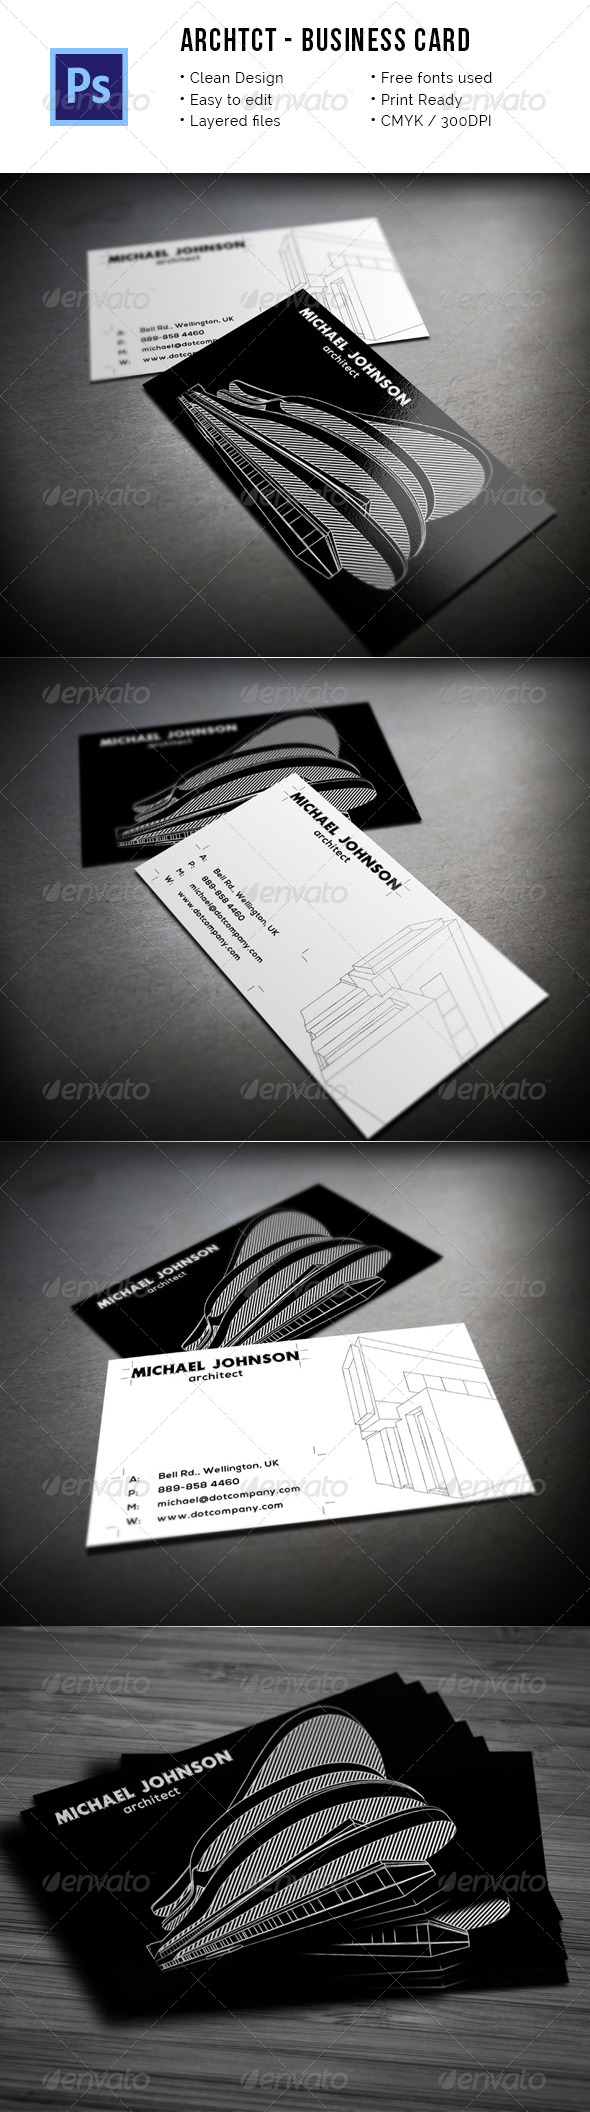 Archtct - Architect Business Card - Industry Specific Business Cards